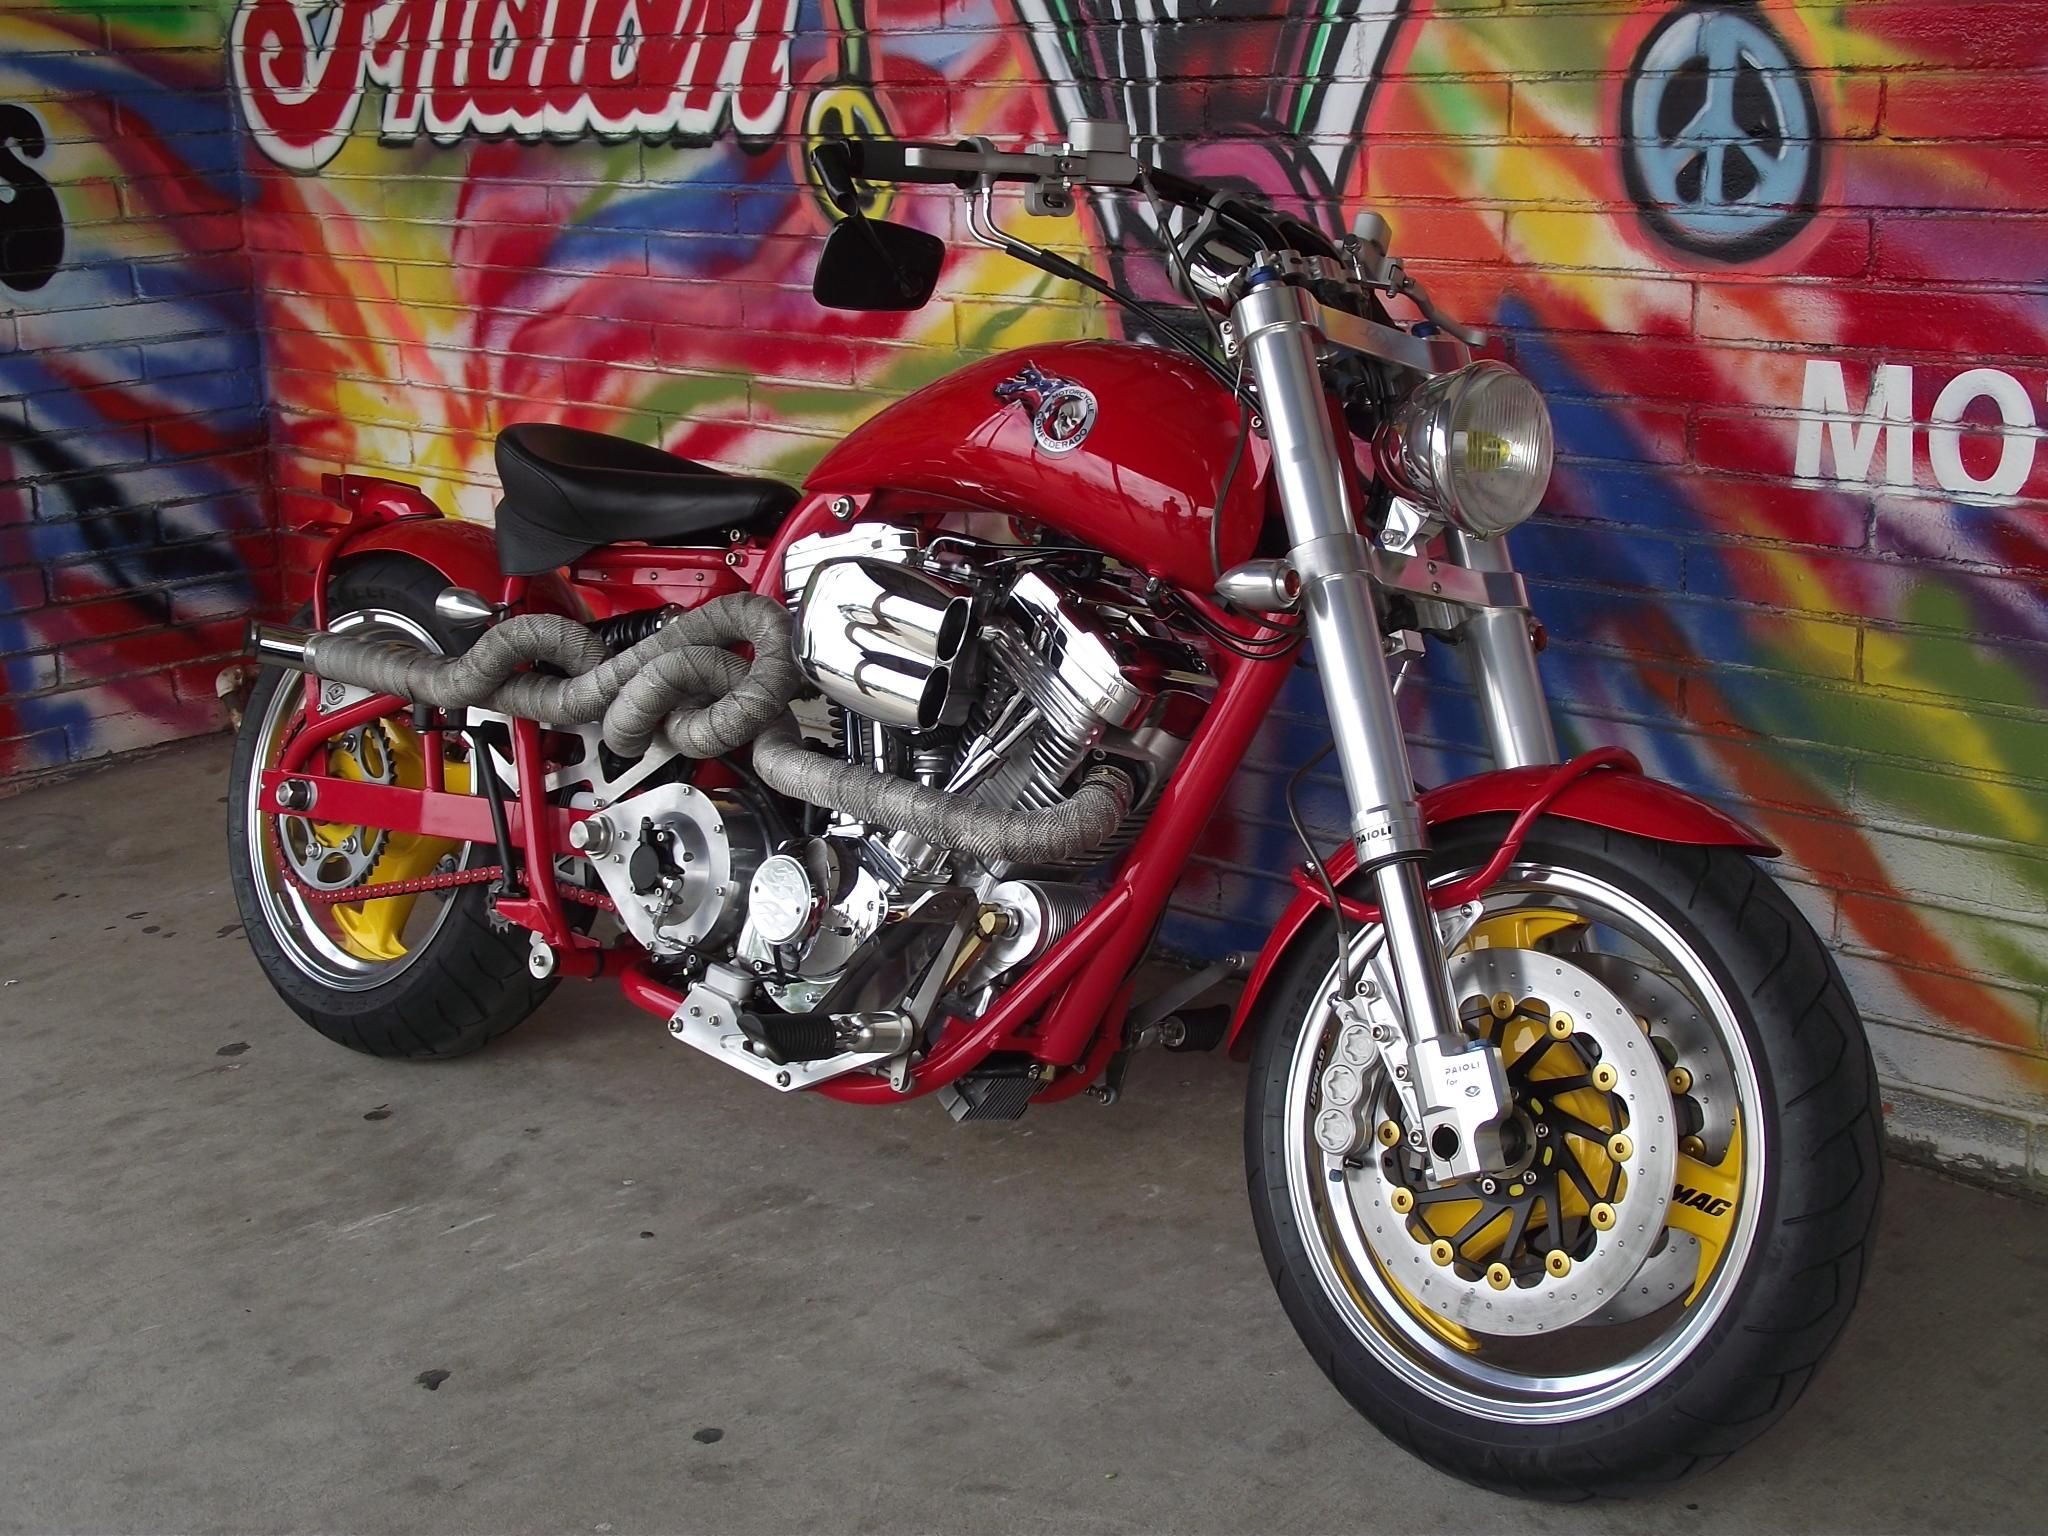 2000 Confederate HELLCAT at Strokers Dallas Motorcycle